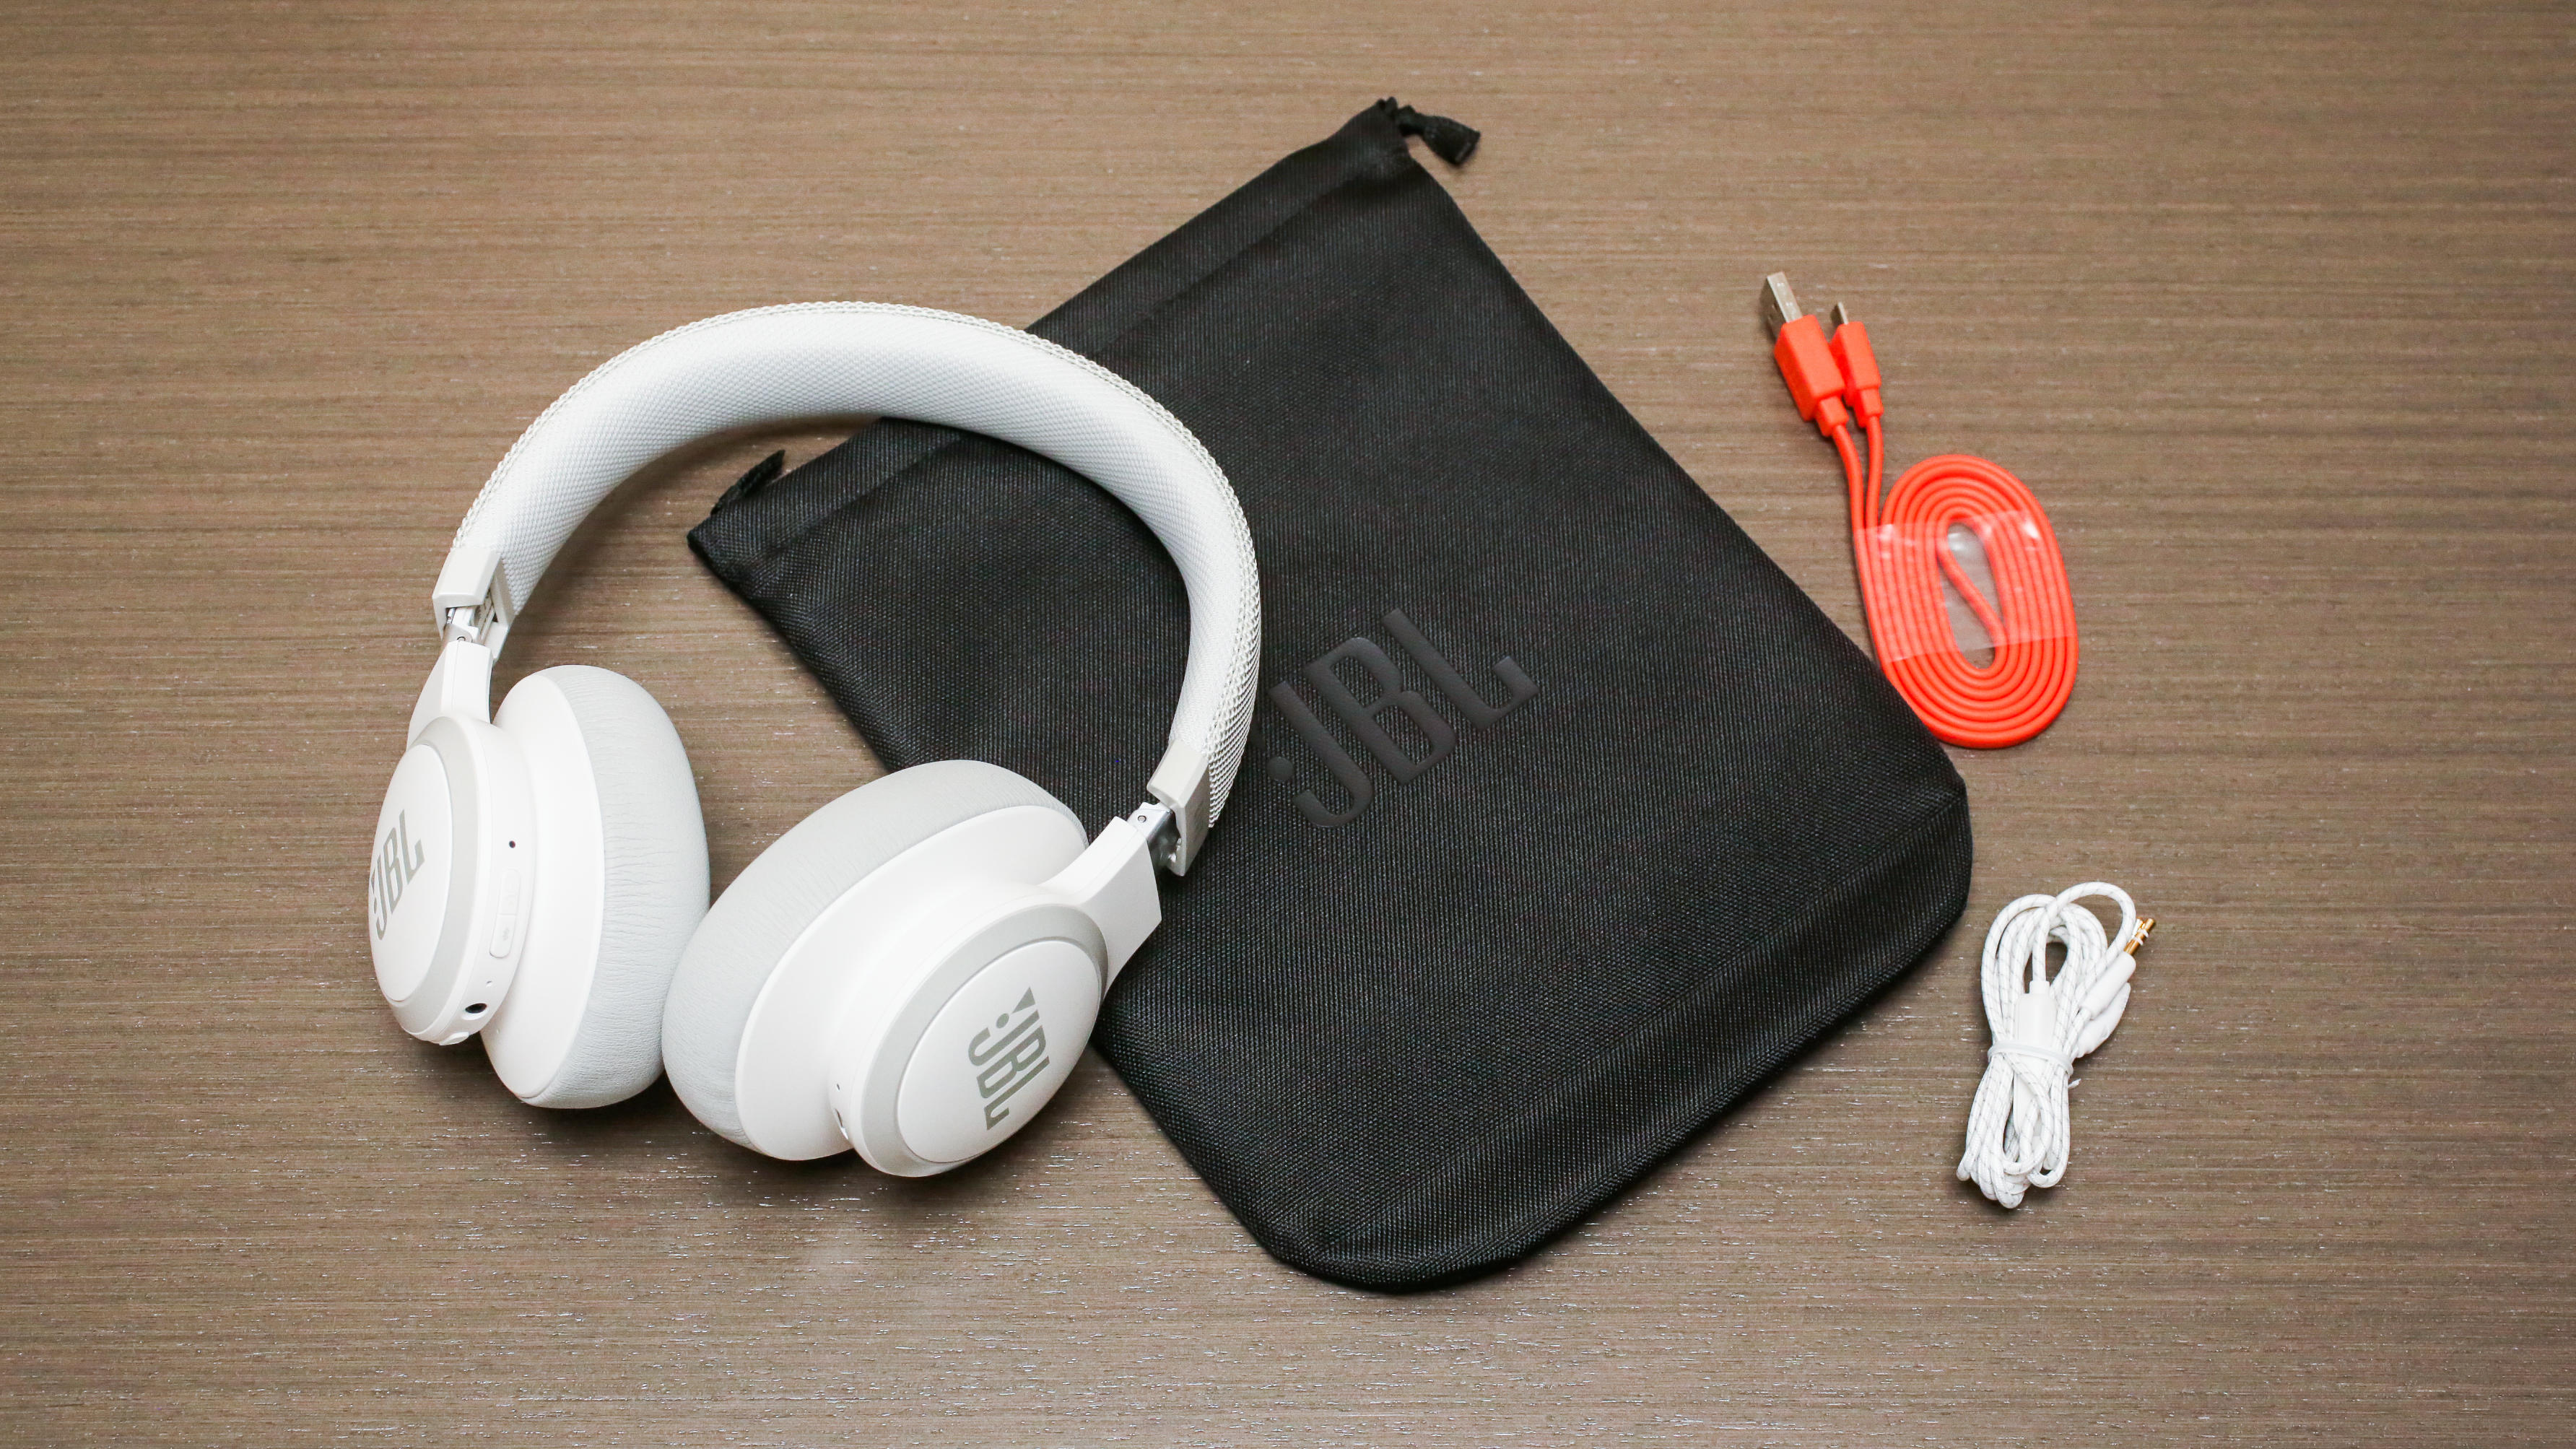 009-jbl-650bt-active-noise-cancelling-headphones